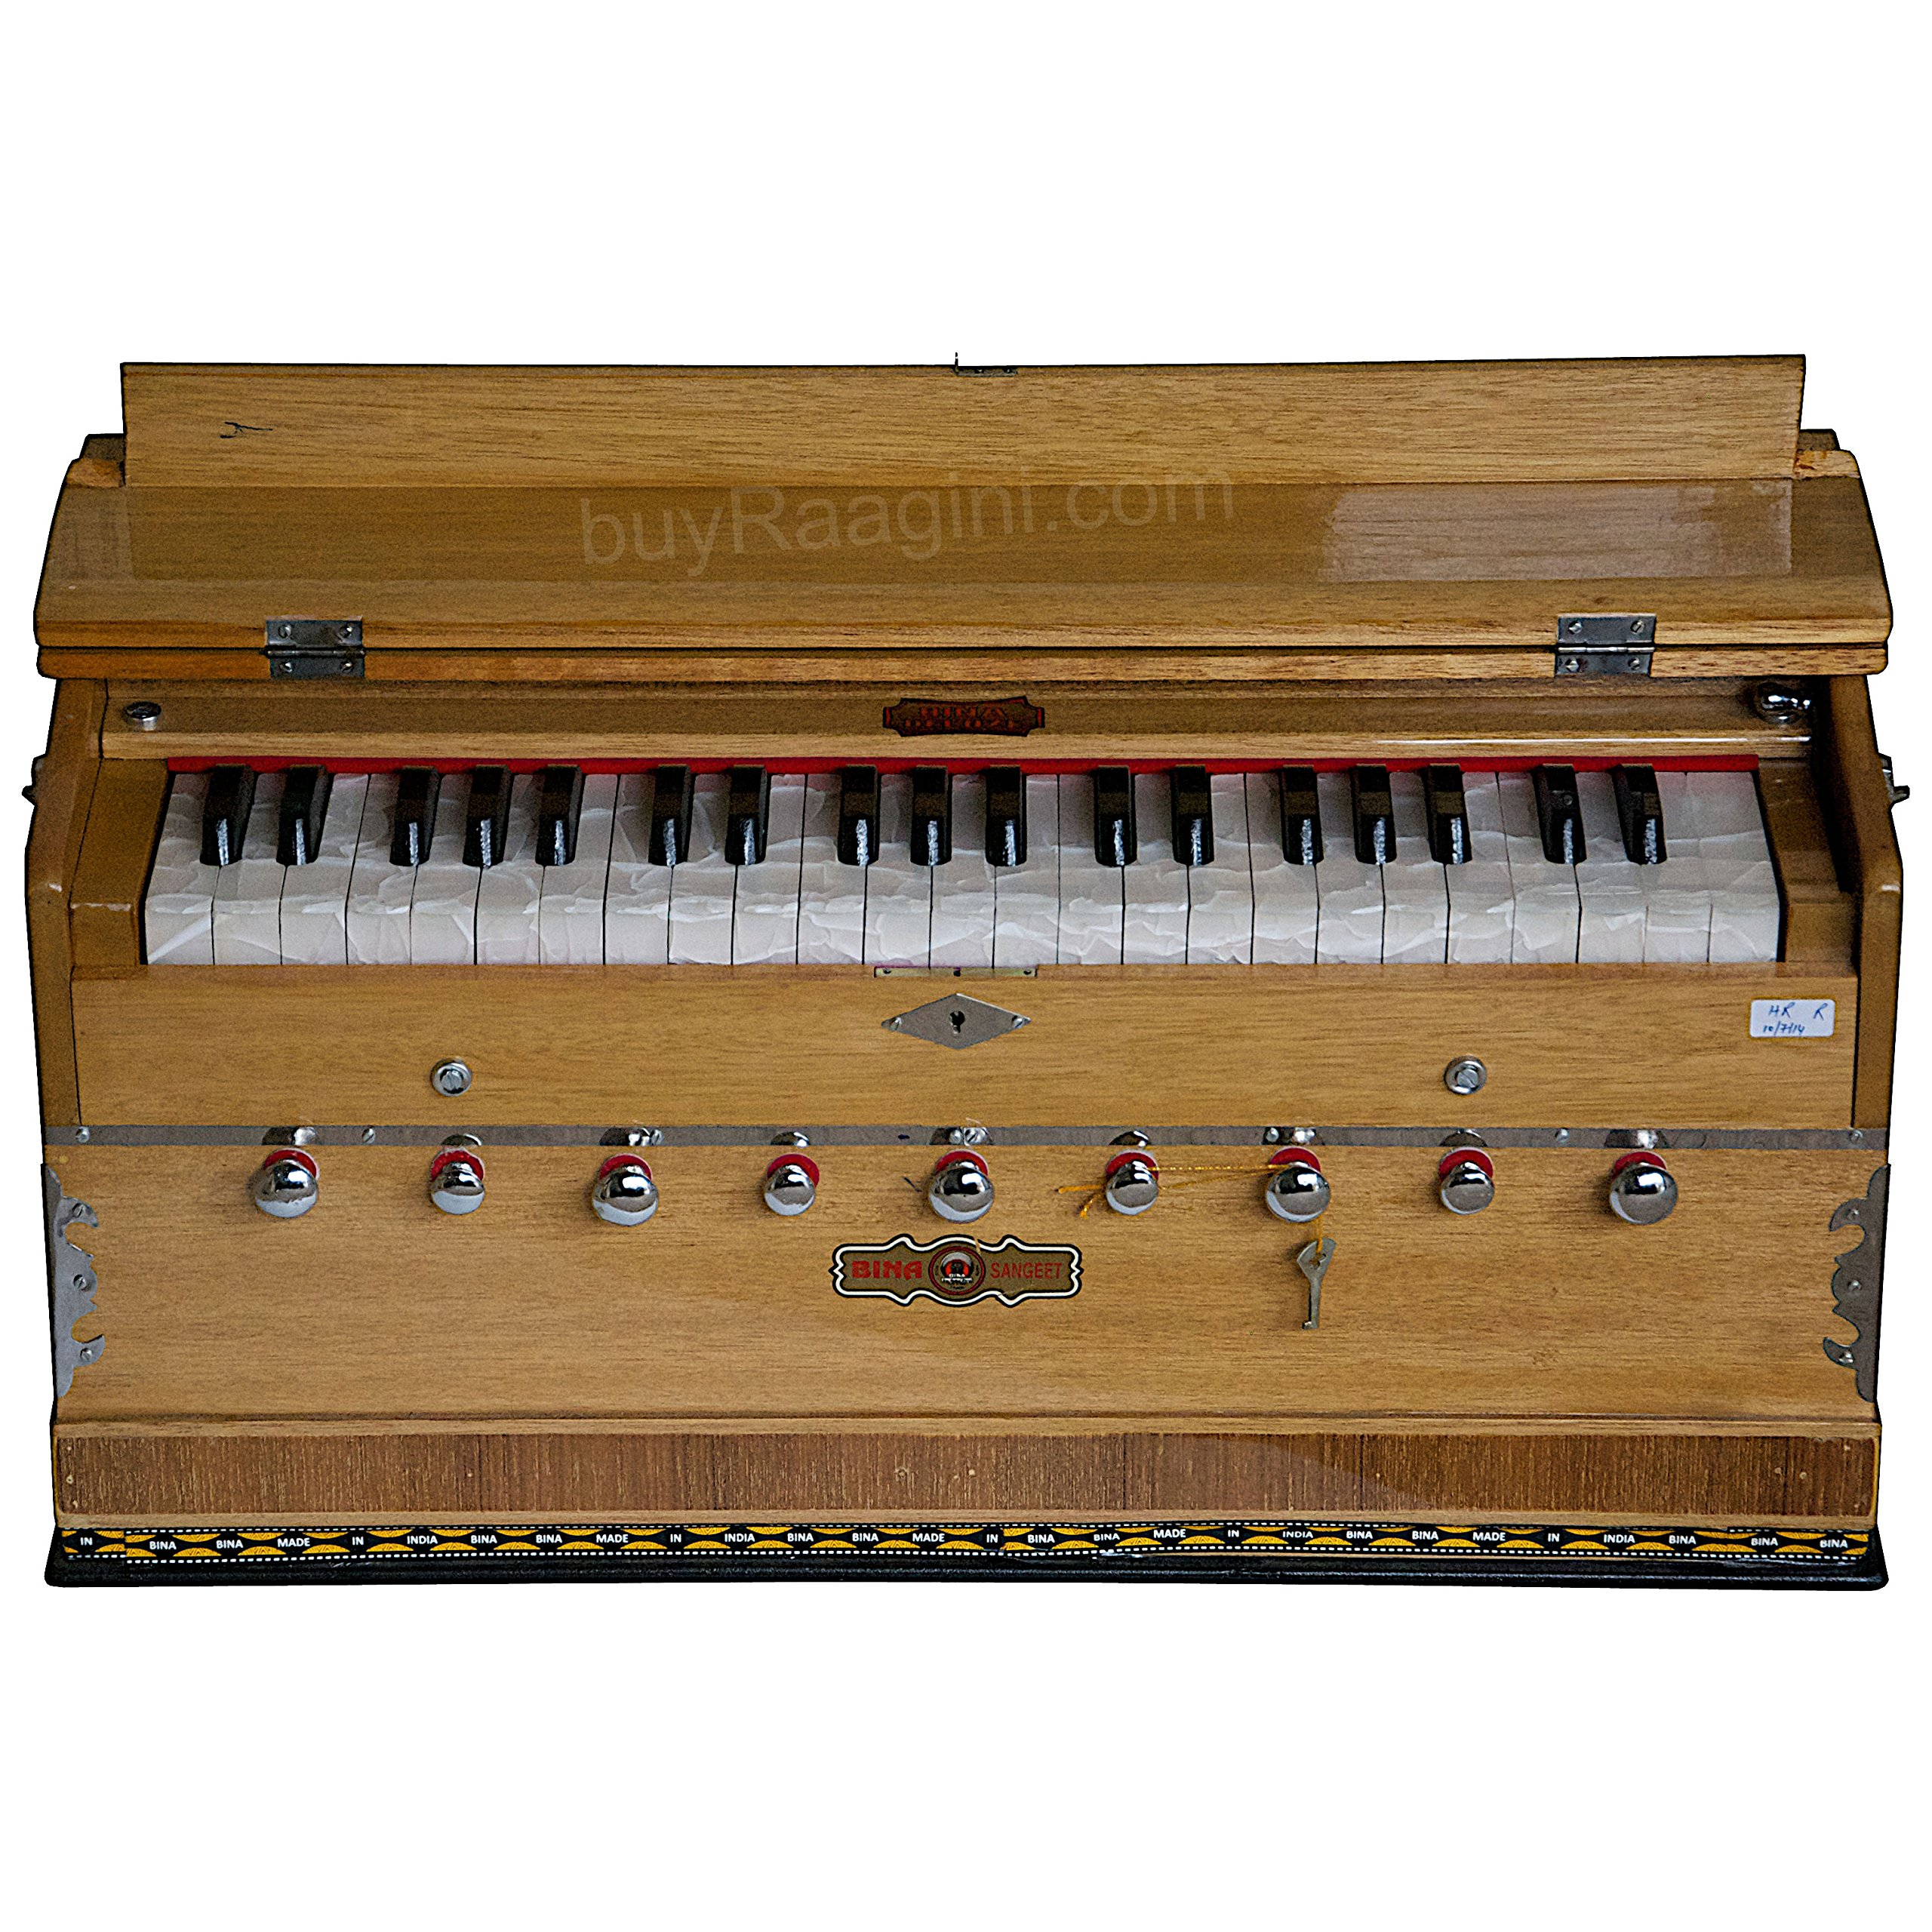 BINA Sangeet, Harmonium In USA, Natural Color, 9 Stops, 3 1/2 Octaves, Double Reed, Coupler, Nylon Bag, Book, Kirtans, Bhajans Musical Instrument Indian (PDI-BJB) by Bina